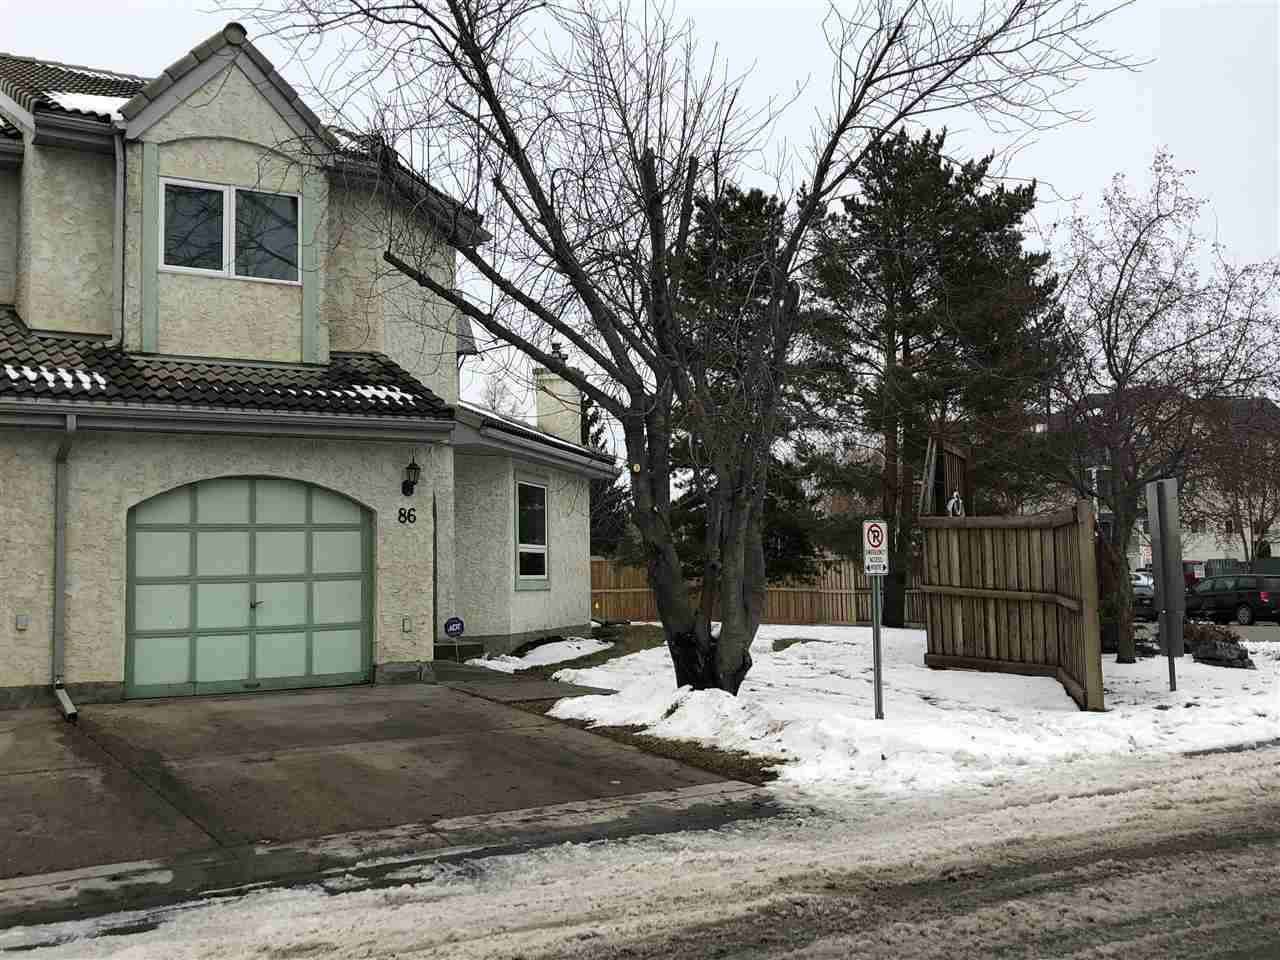 Townhouse for sale at 9520 174 St Nw Unit 86 Edmonton Alberta - MLS: E4180089